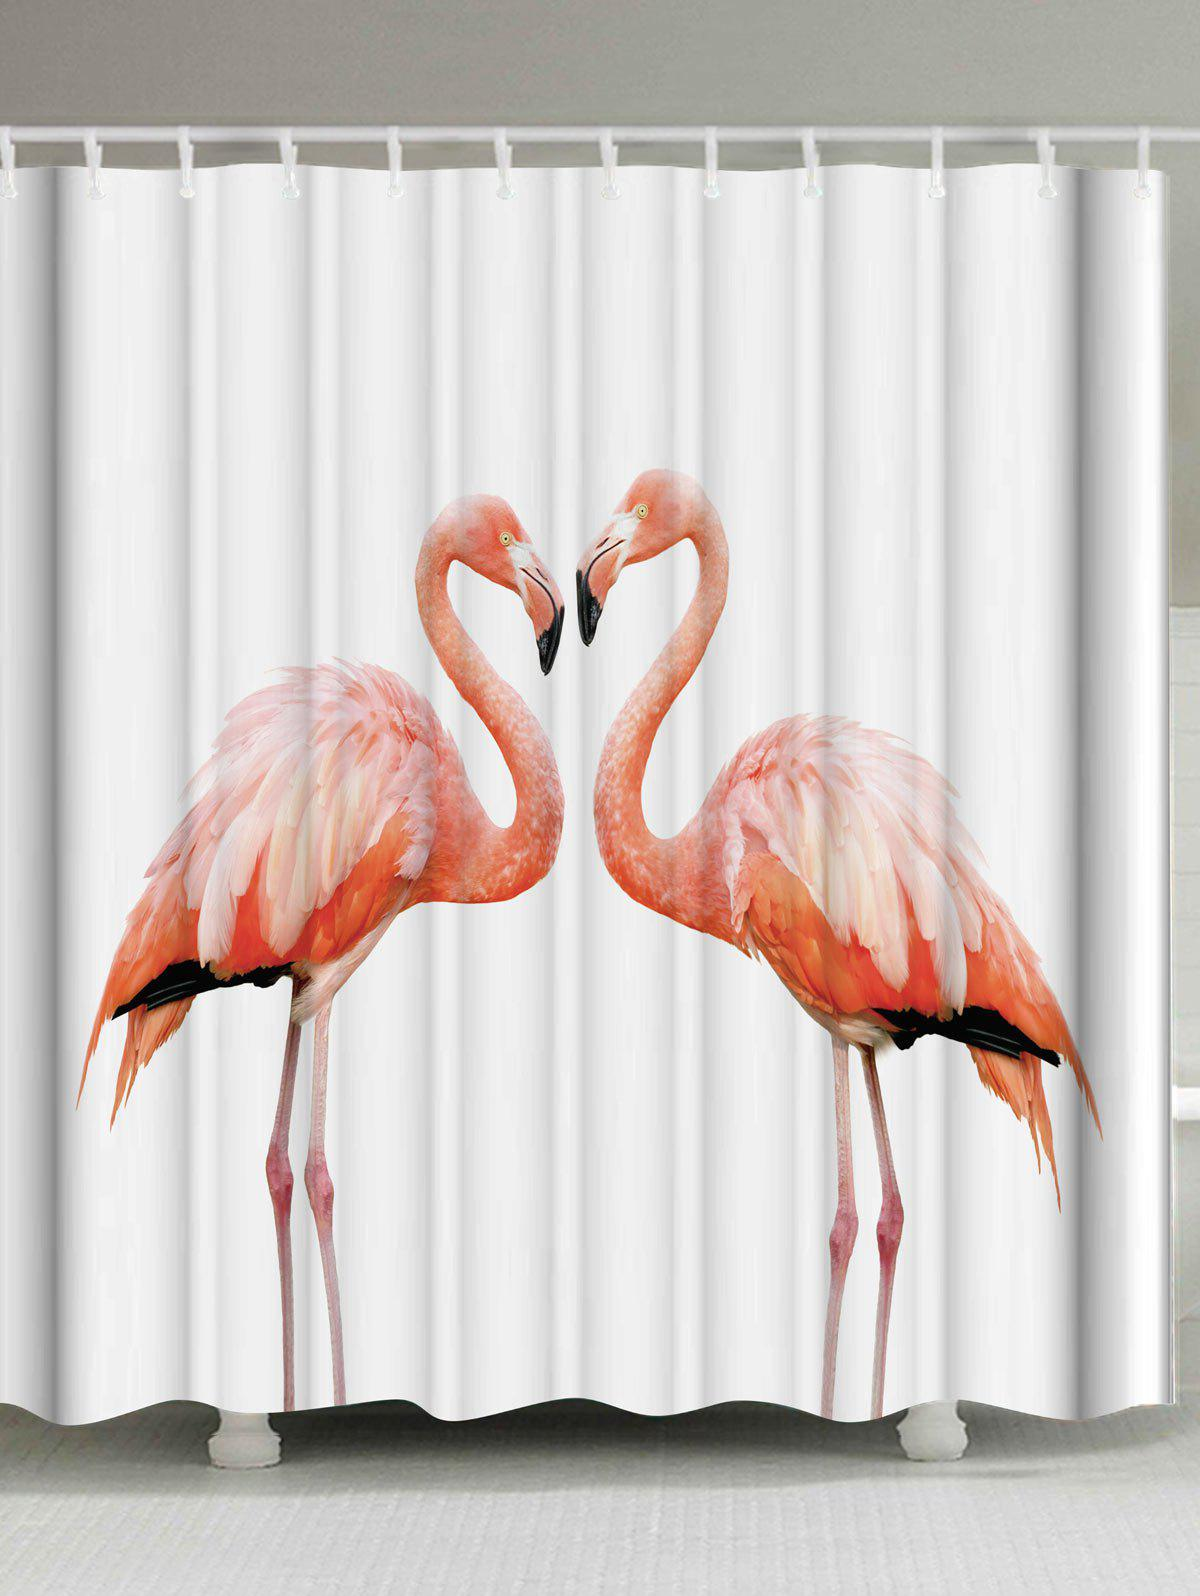 Waterproof Shower Curtain with Flamingo Print